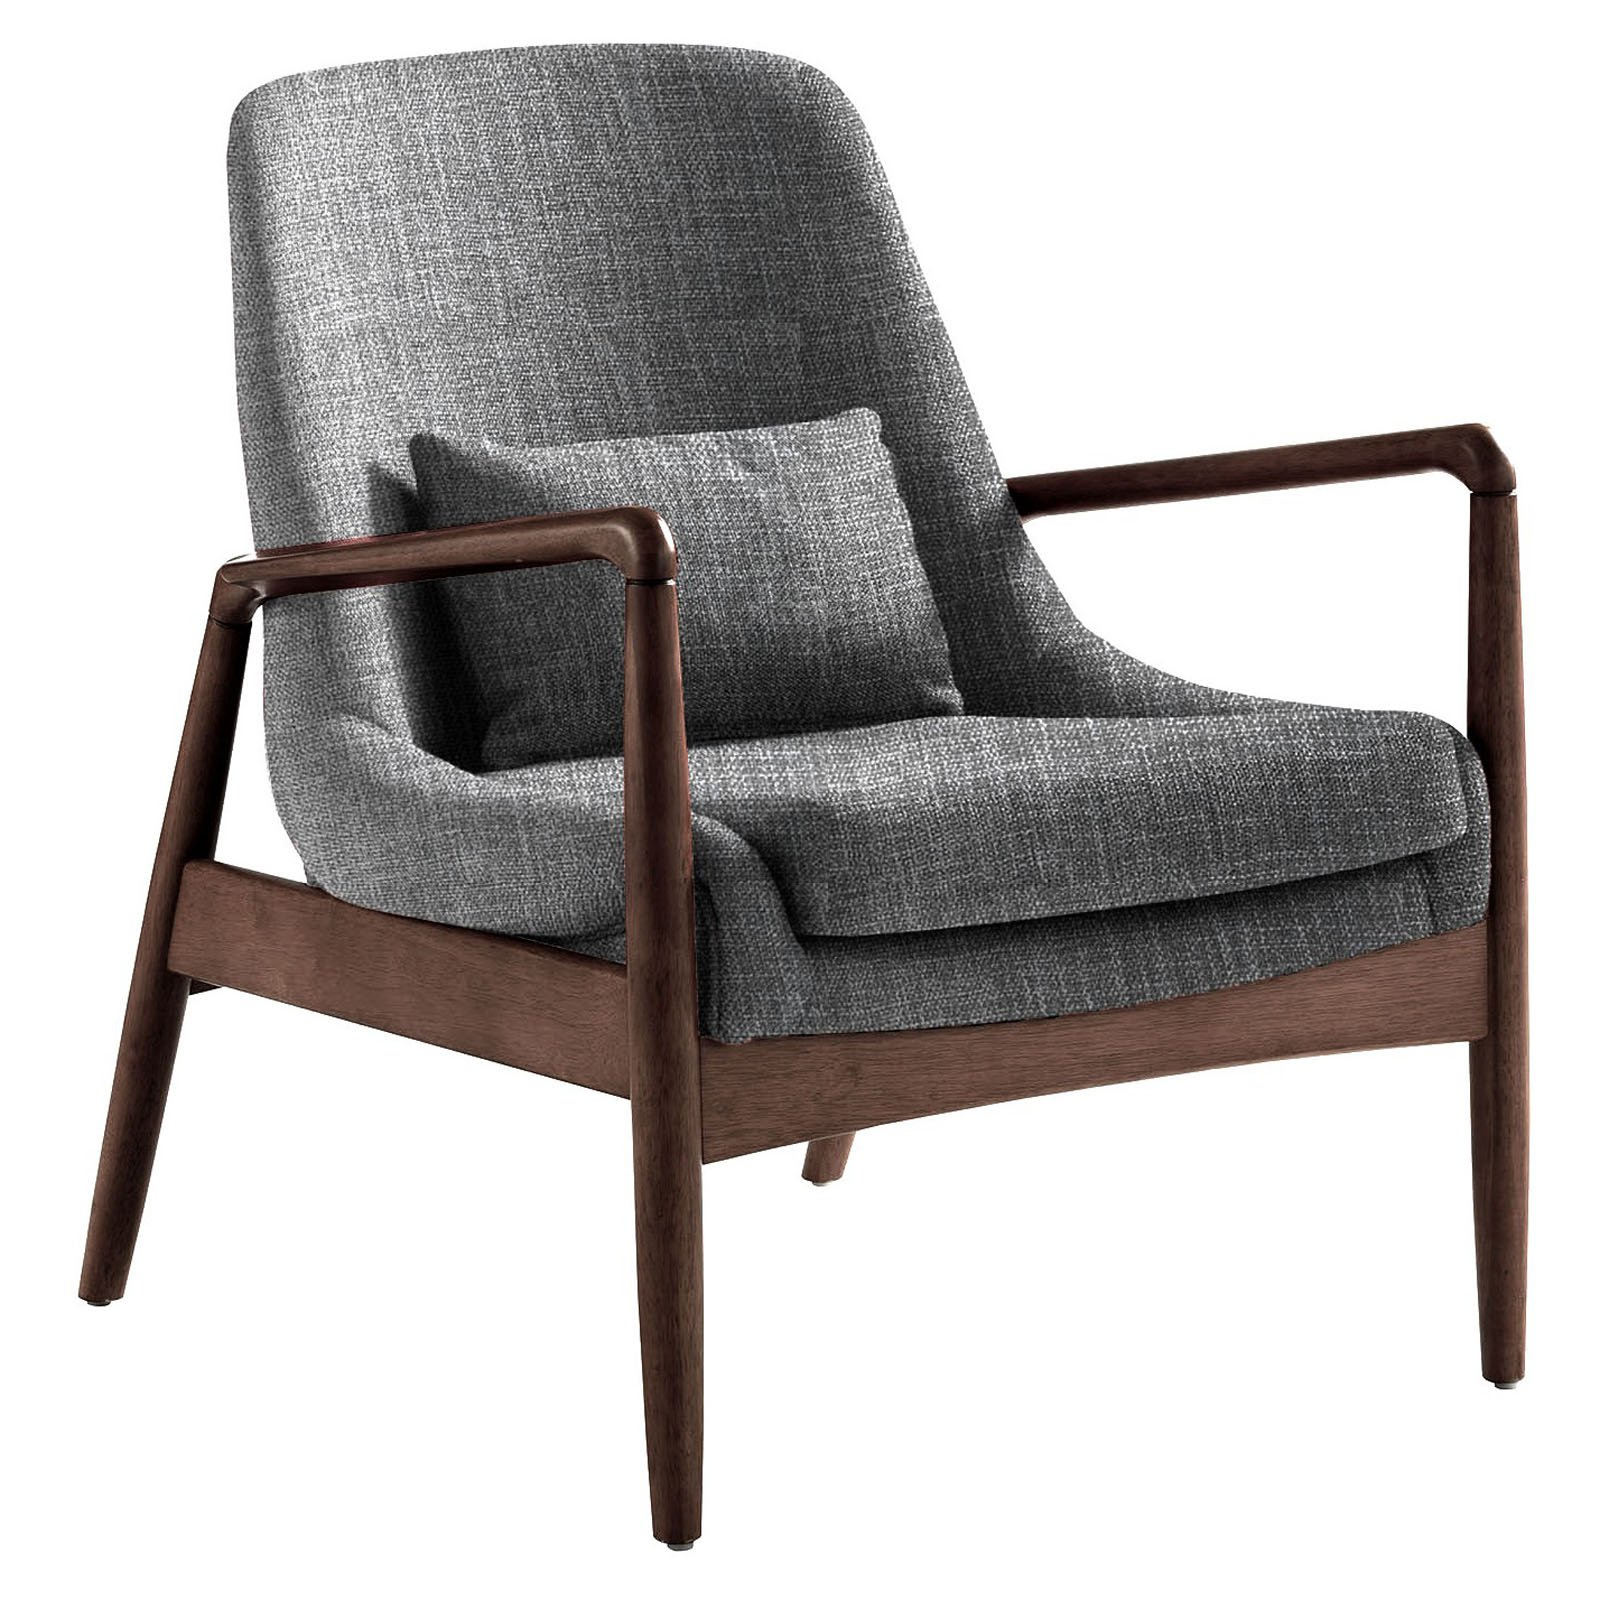 Cool Baxton Studio Carter Mid Century Modern Retro Fabric Upholstered Leisure Accent Chair In Walnut Wood Frame Multiple Colors Squirreltailoven Fun Painted Chair Ideas Images Squirreltailovenorg